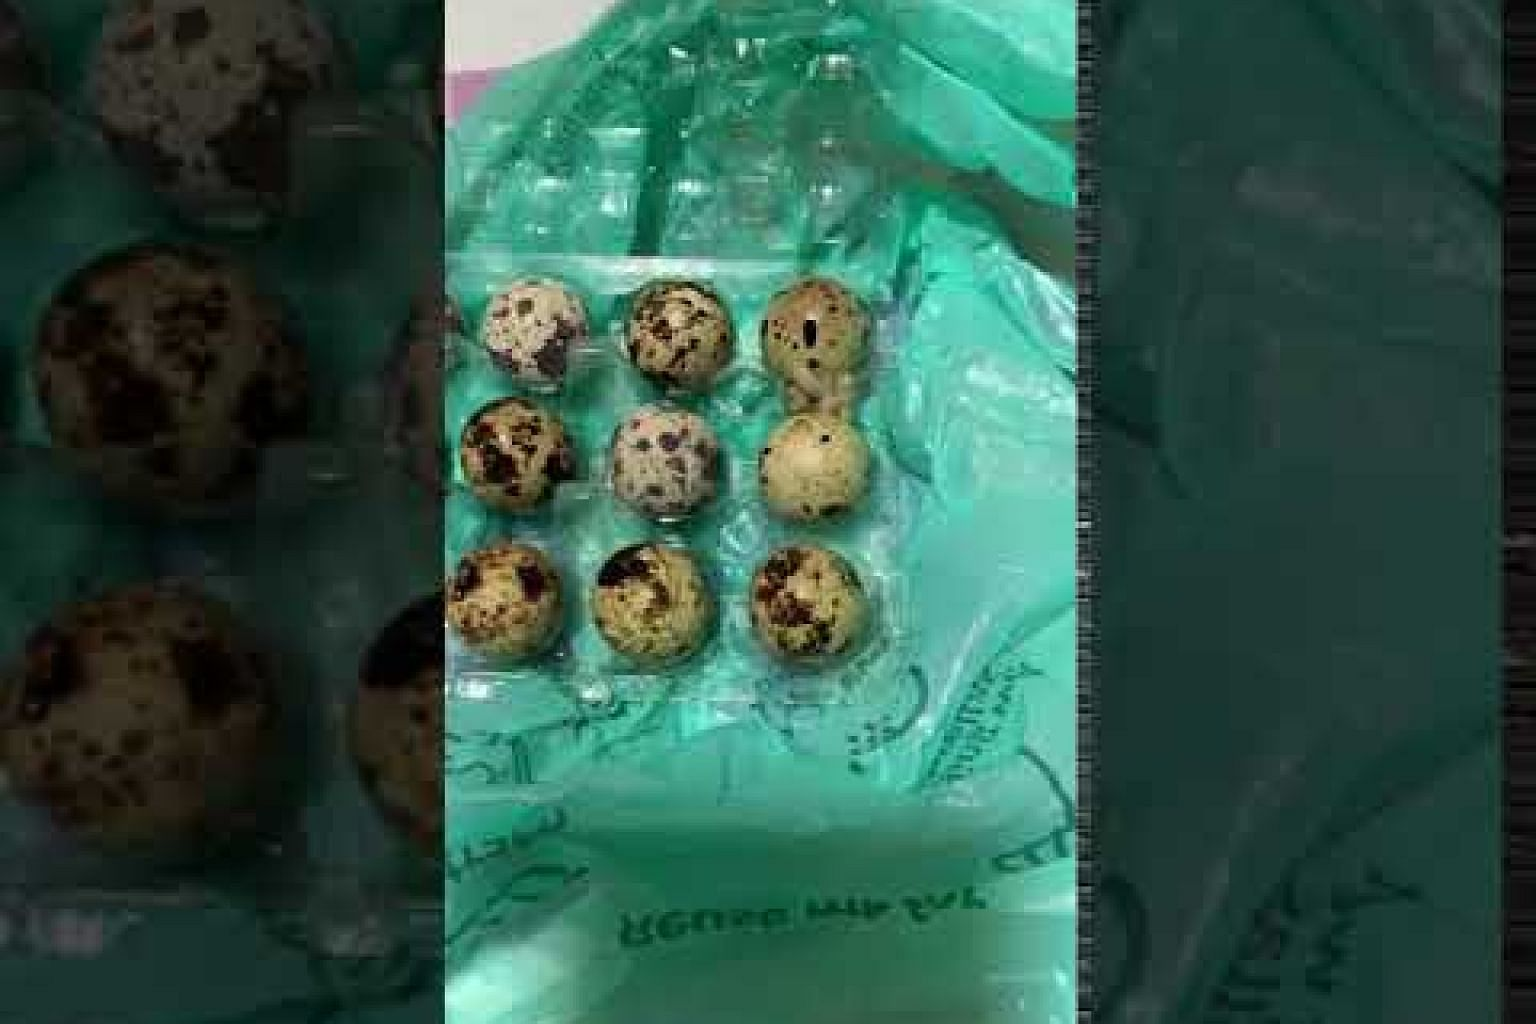 Maggots found in carton of quail eggs from Sheng Siong